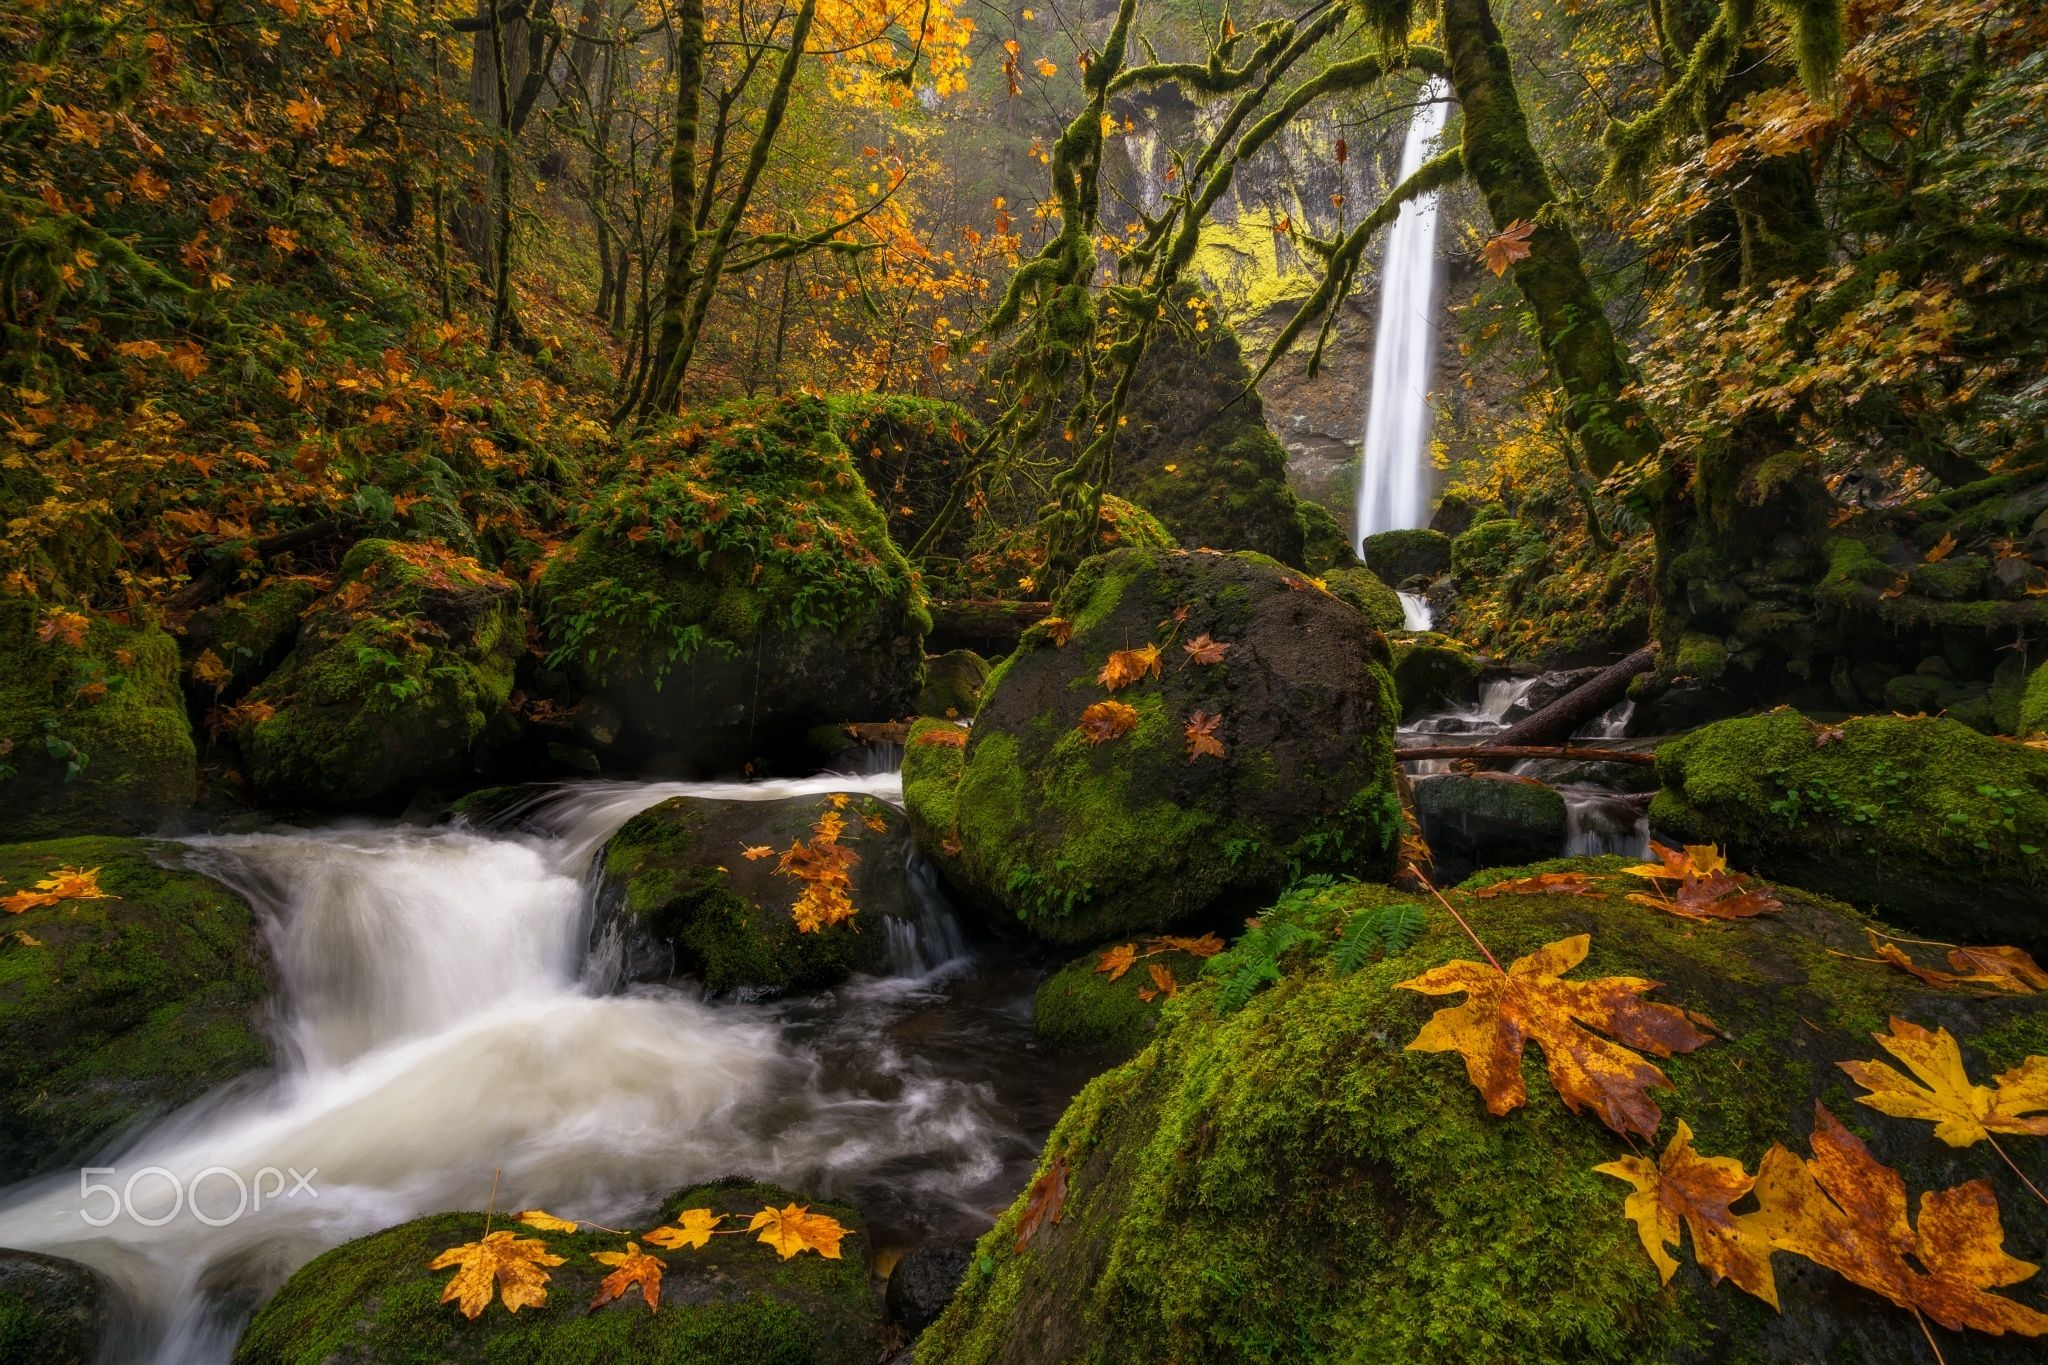 Elowah Mystery of Autumn - This image is of beautiful Elowah Falls looking through the veil of moss covered boulders sprinkled with maple leaves, moss covered branches and the warm atmosphere of Autumn.